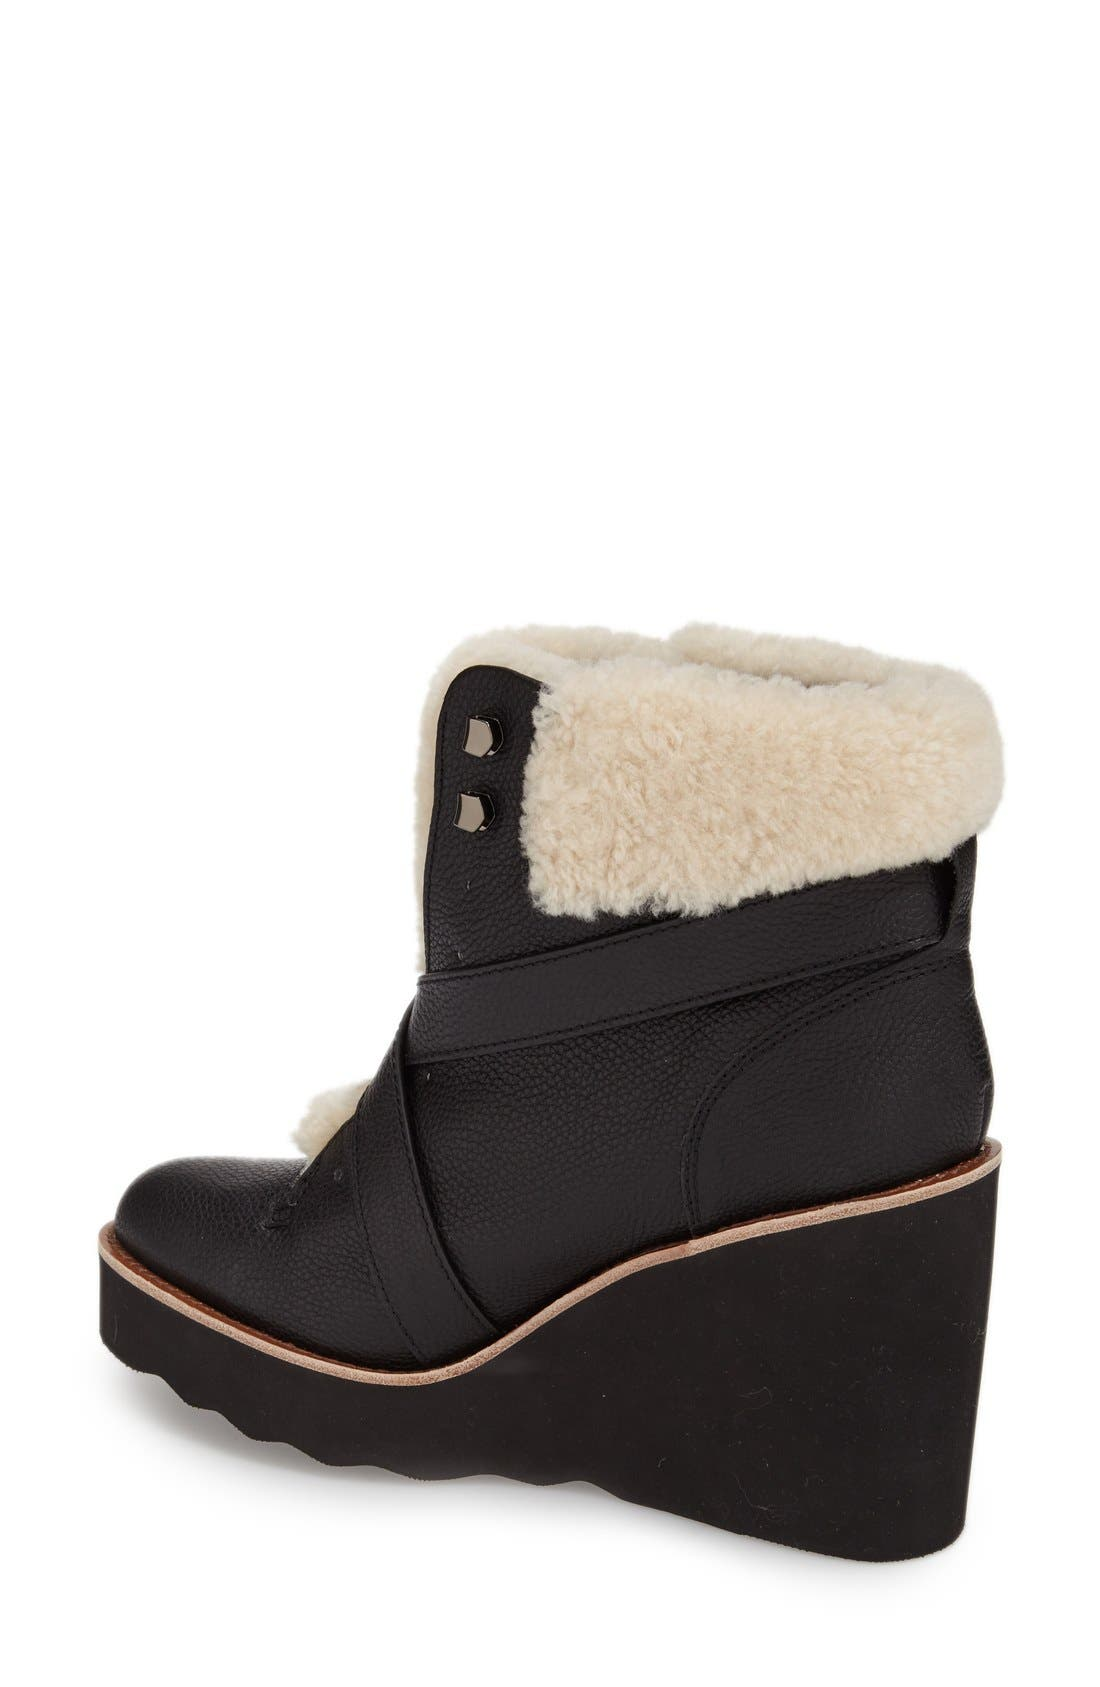 'Kenna' Wedge Bootie,                             Alternate thumbnail 2, color,                             001